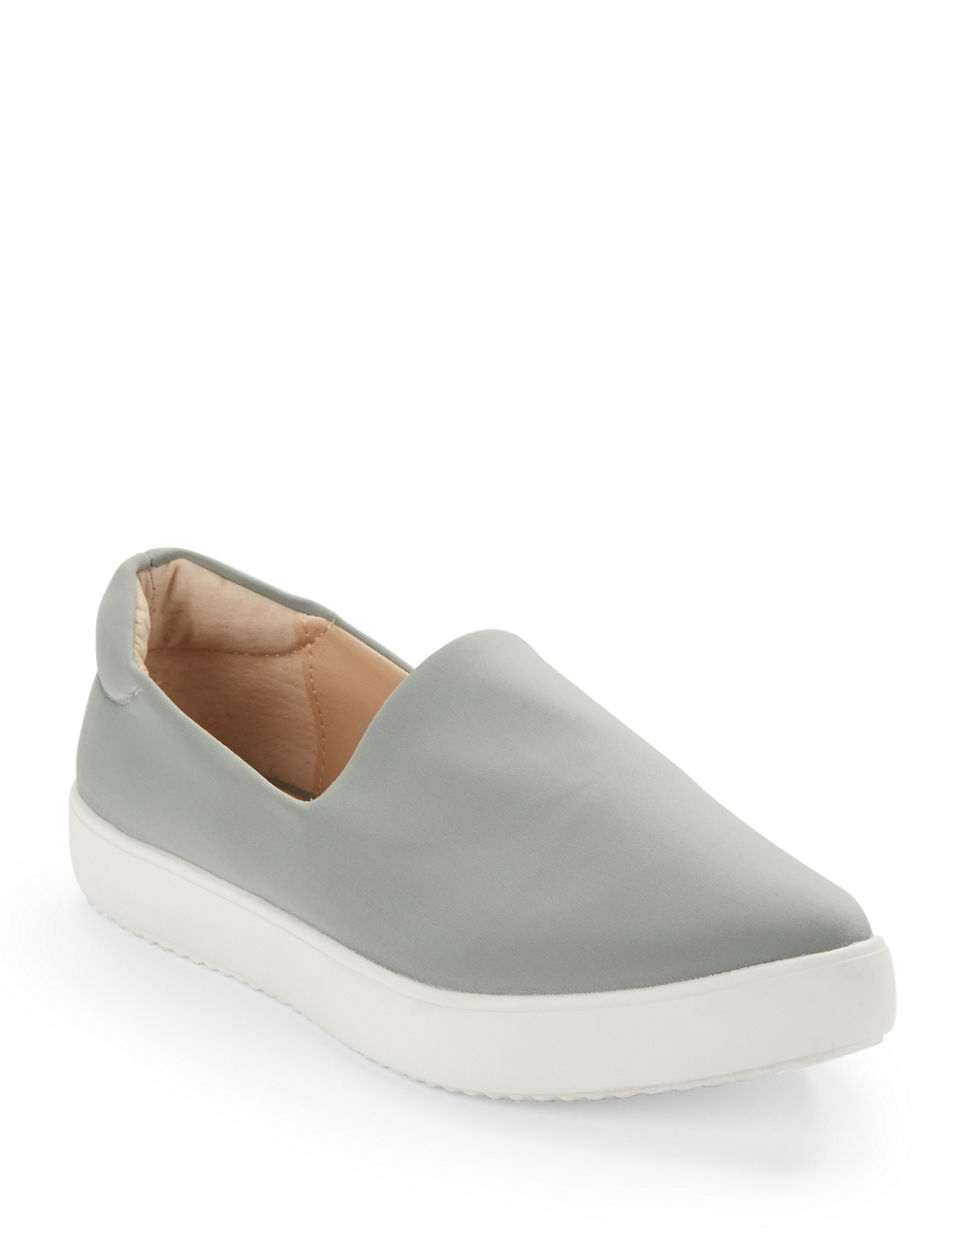 Steve Madden Leather Slip On Shoes